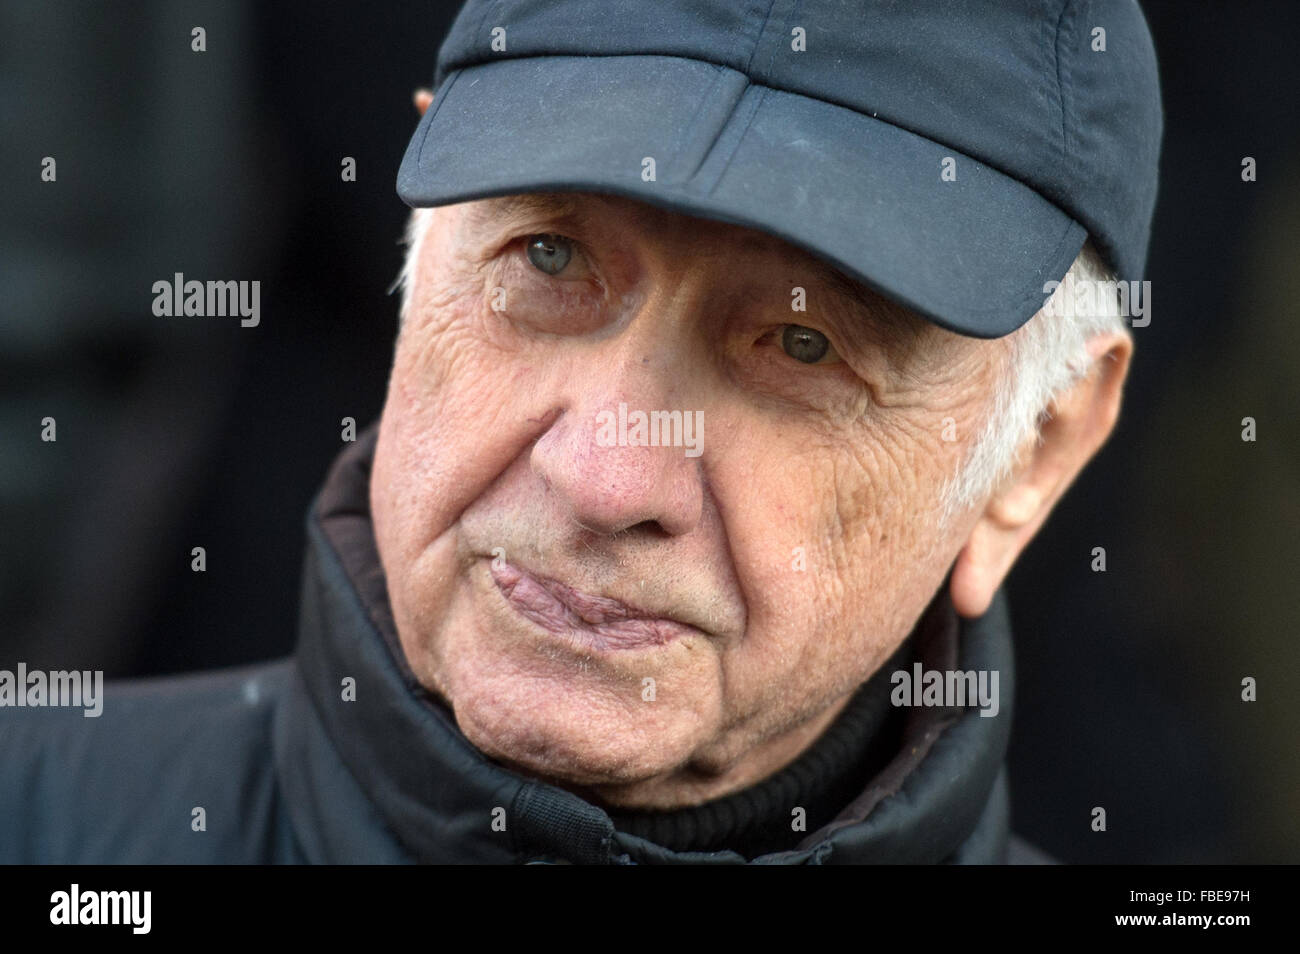 Leipzig, Germany. 14th Jan, 2016. Actor Armin Mueller-Stahl leaves the St. Thomas Church after funeral services - Stock Image